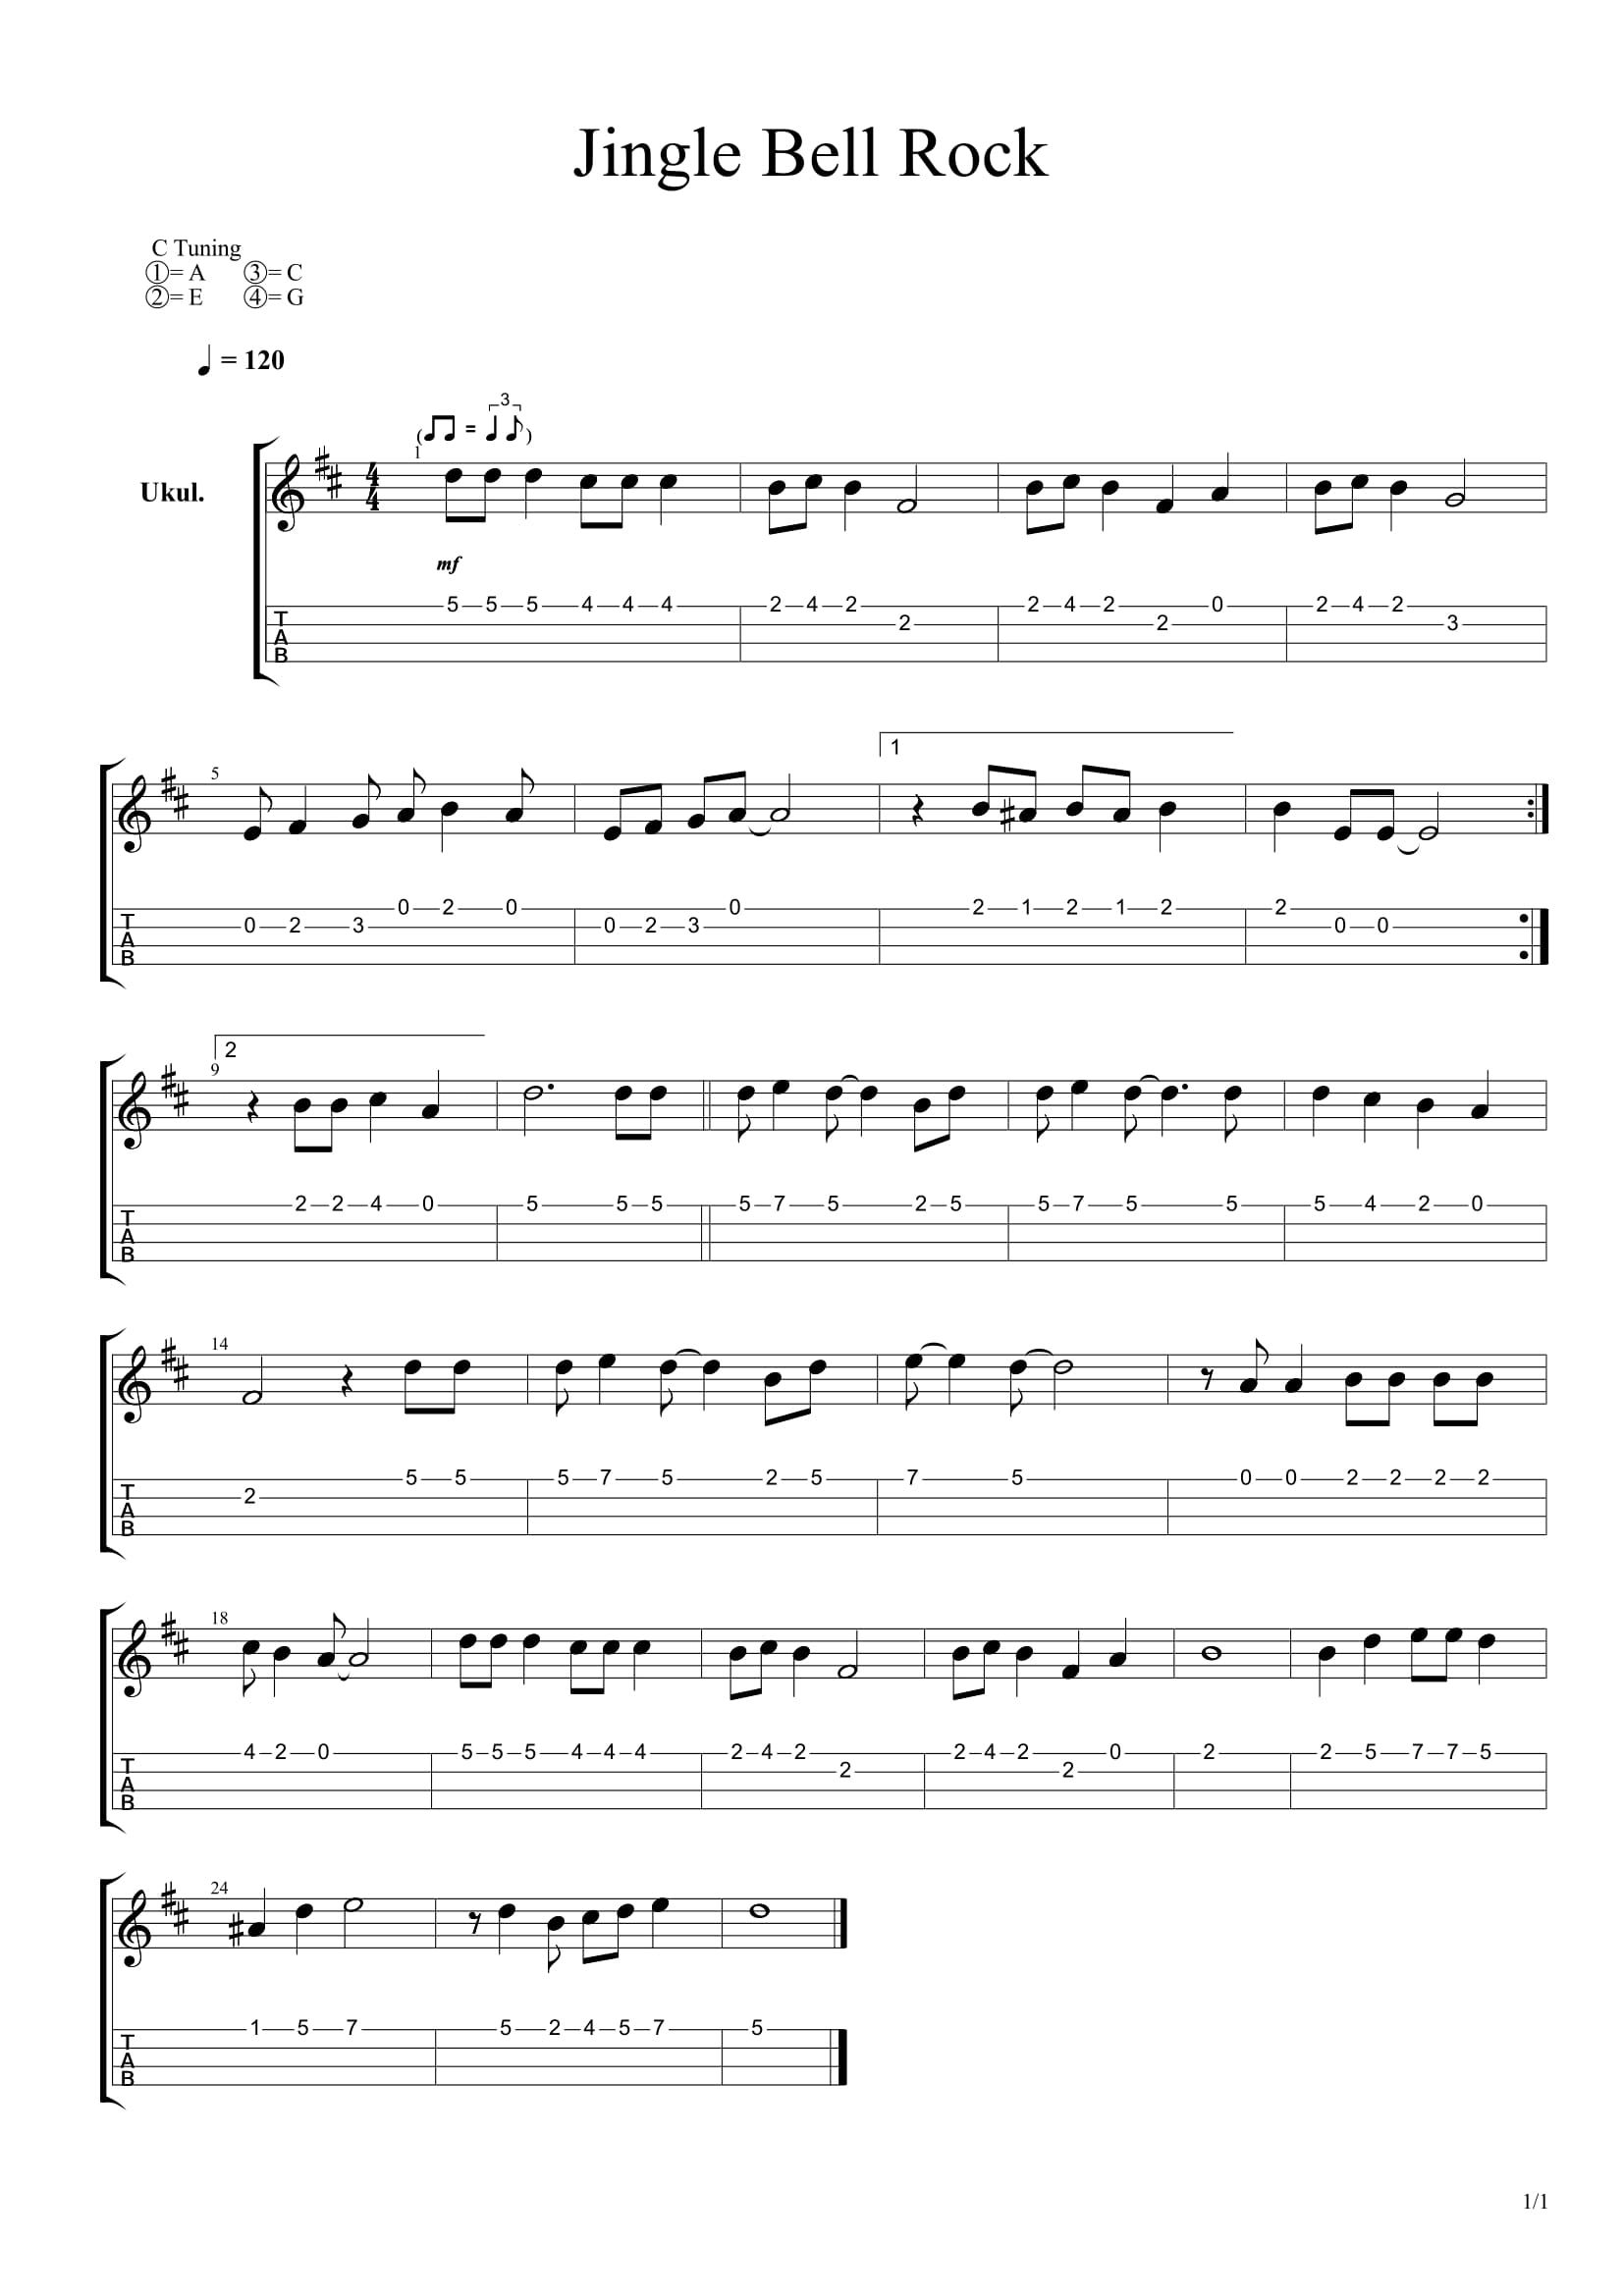 Jingle Bell Rock Ukulele Tabs Ukulele Tabs Songs Ukulele Songs